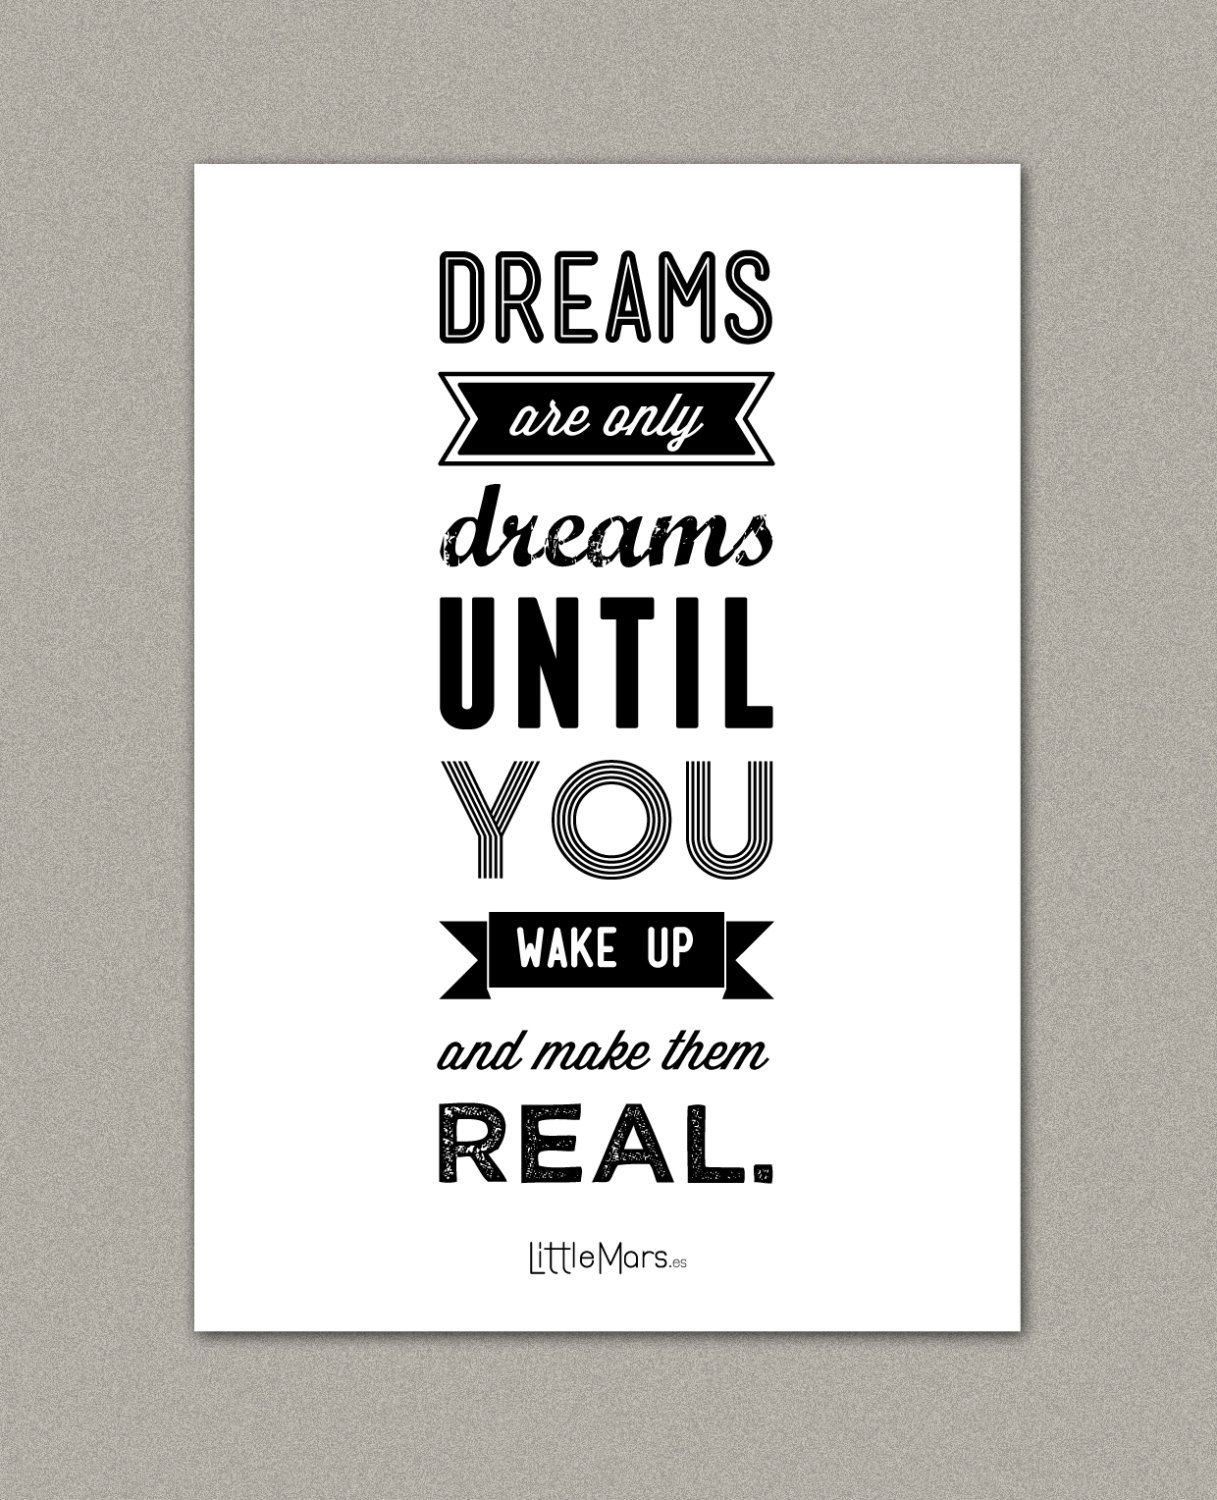 Inspirational Quotes On Pinterest: Make Your Dreams Real #print #quote #art #poster